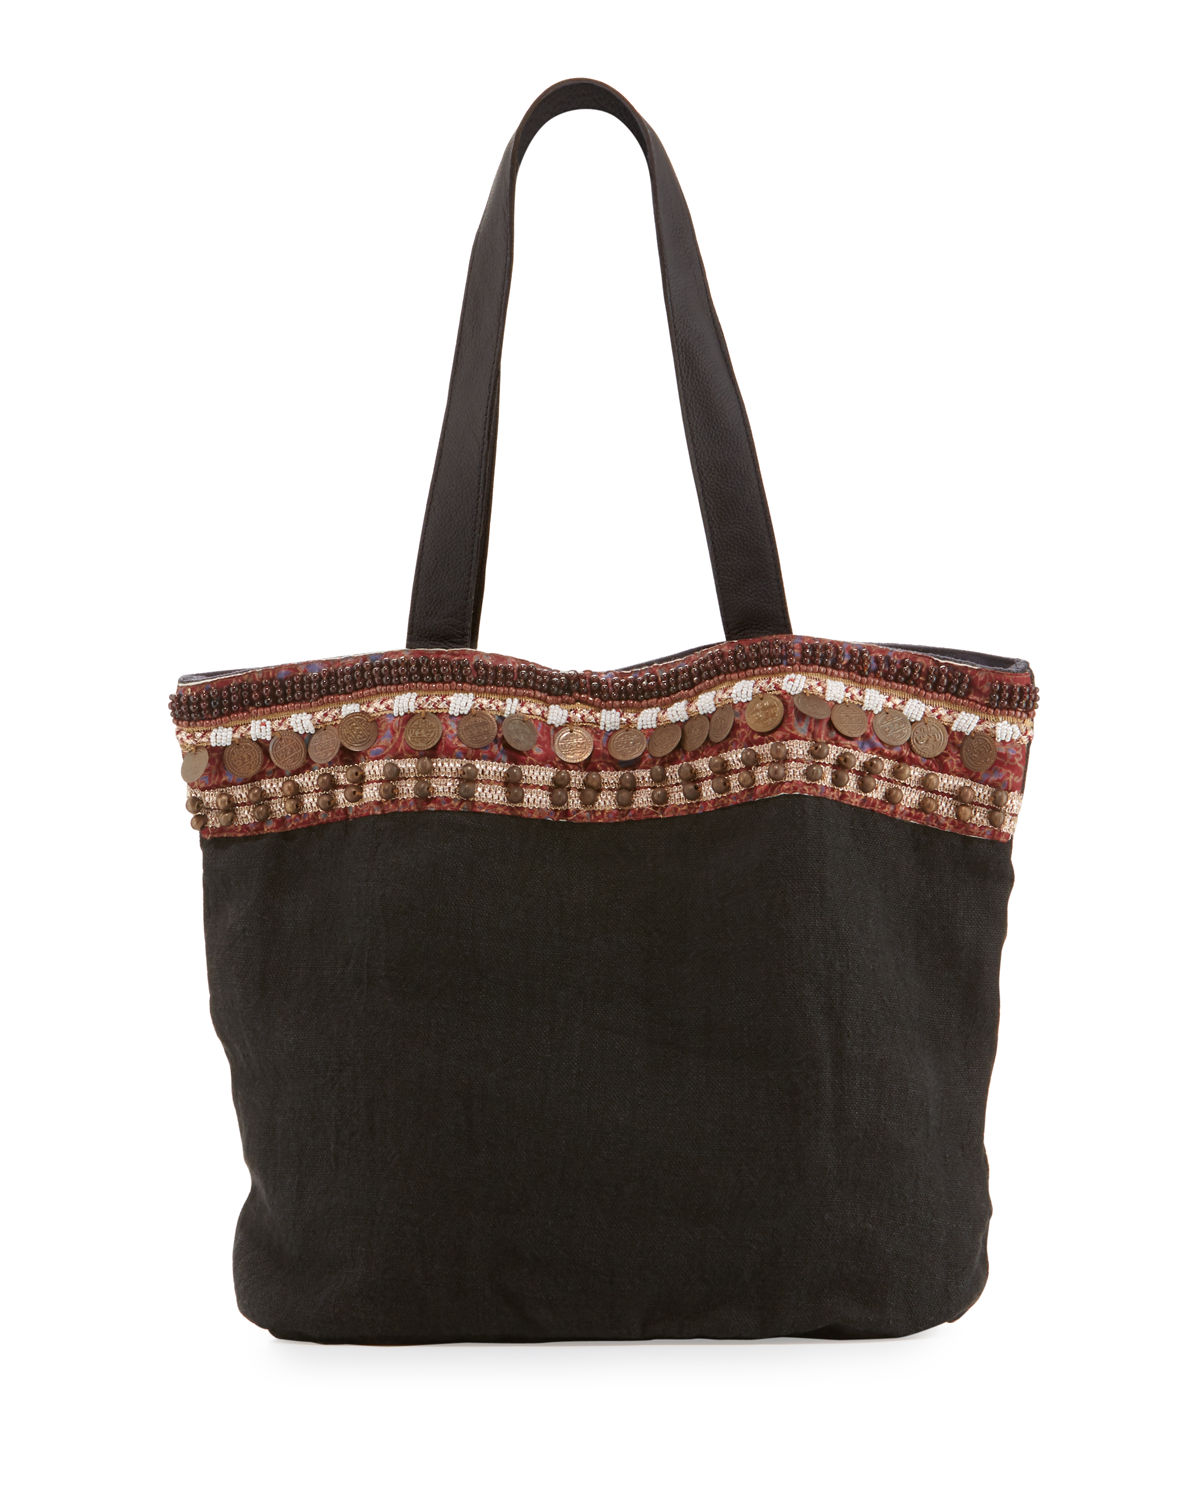 860ceacc3377 Ale by Alessandra Cleopatra Beaded   Embellished Linen Tote Bag ...